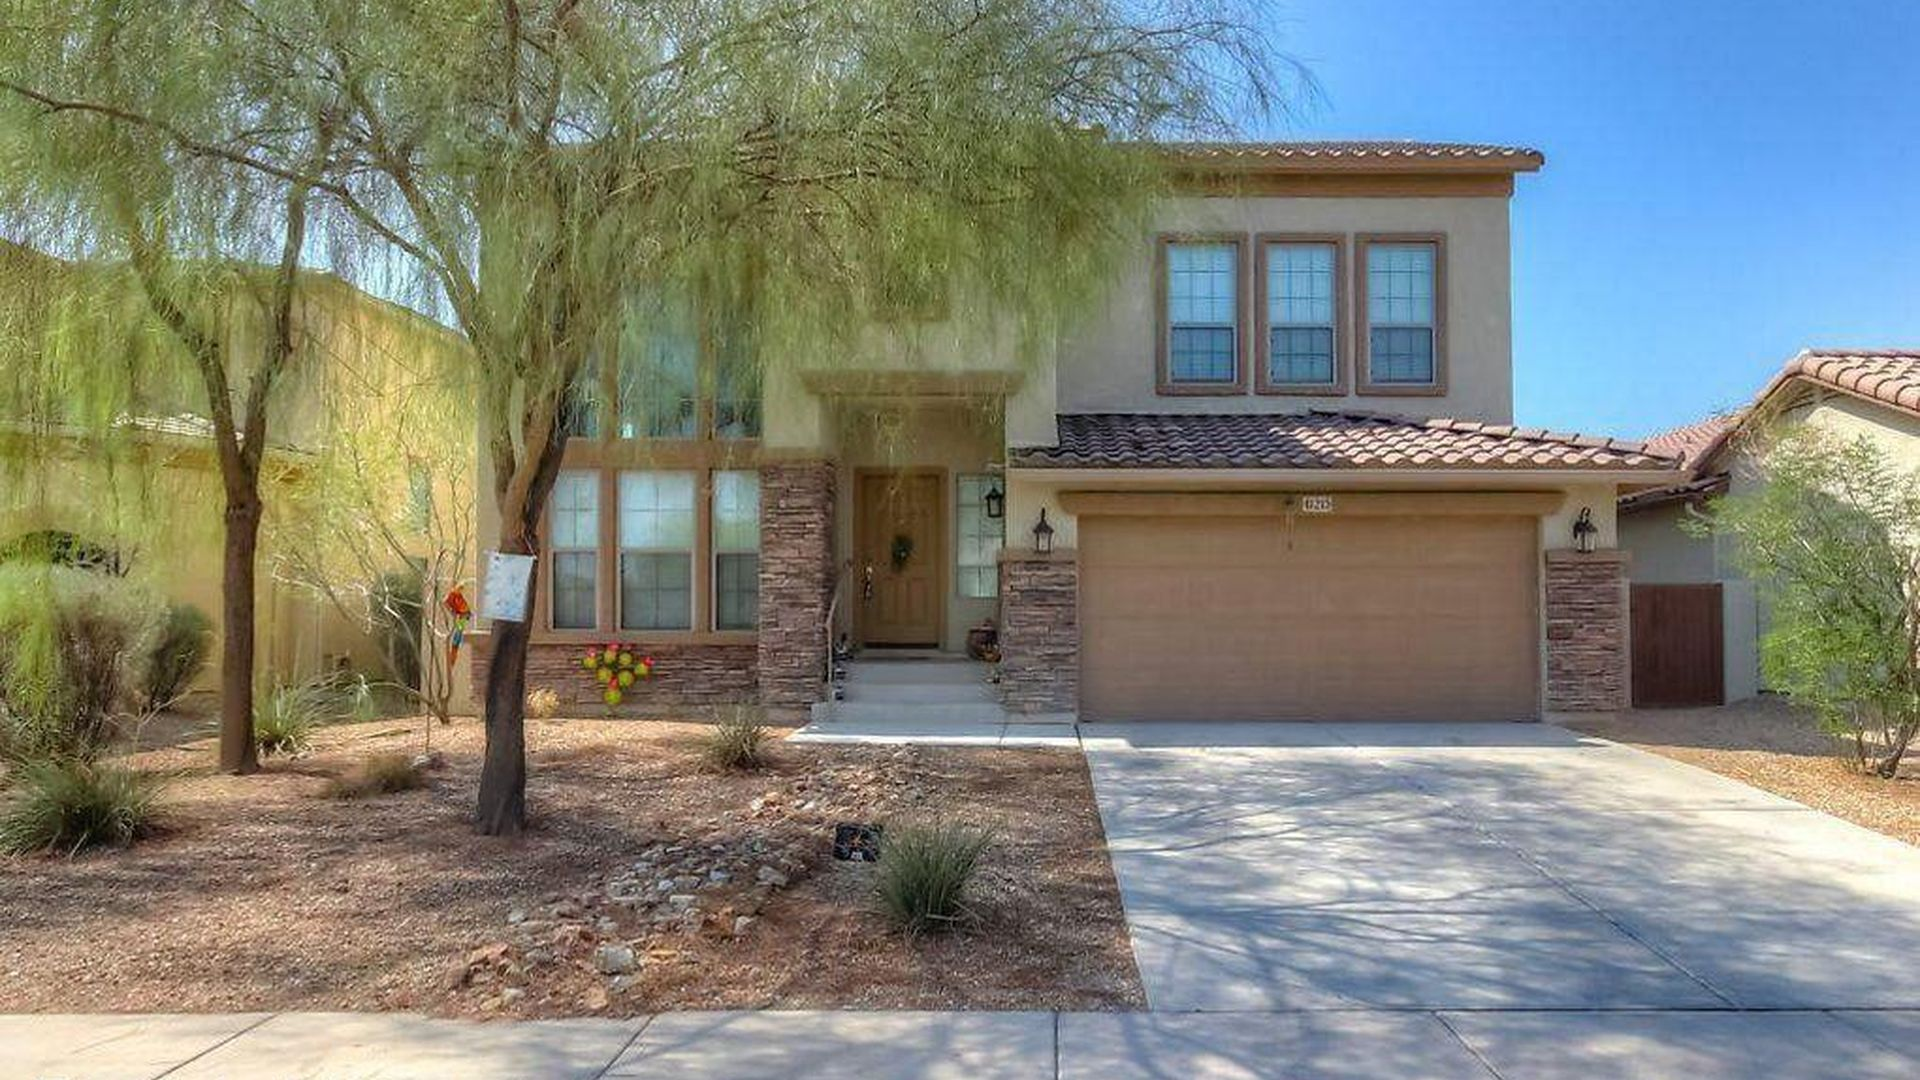 Houses For Rent in Maricopa AZ - 49 Homes | Zillow